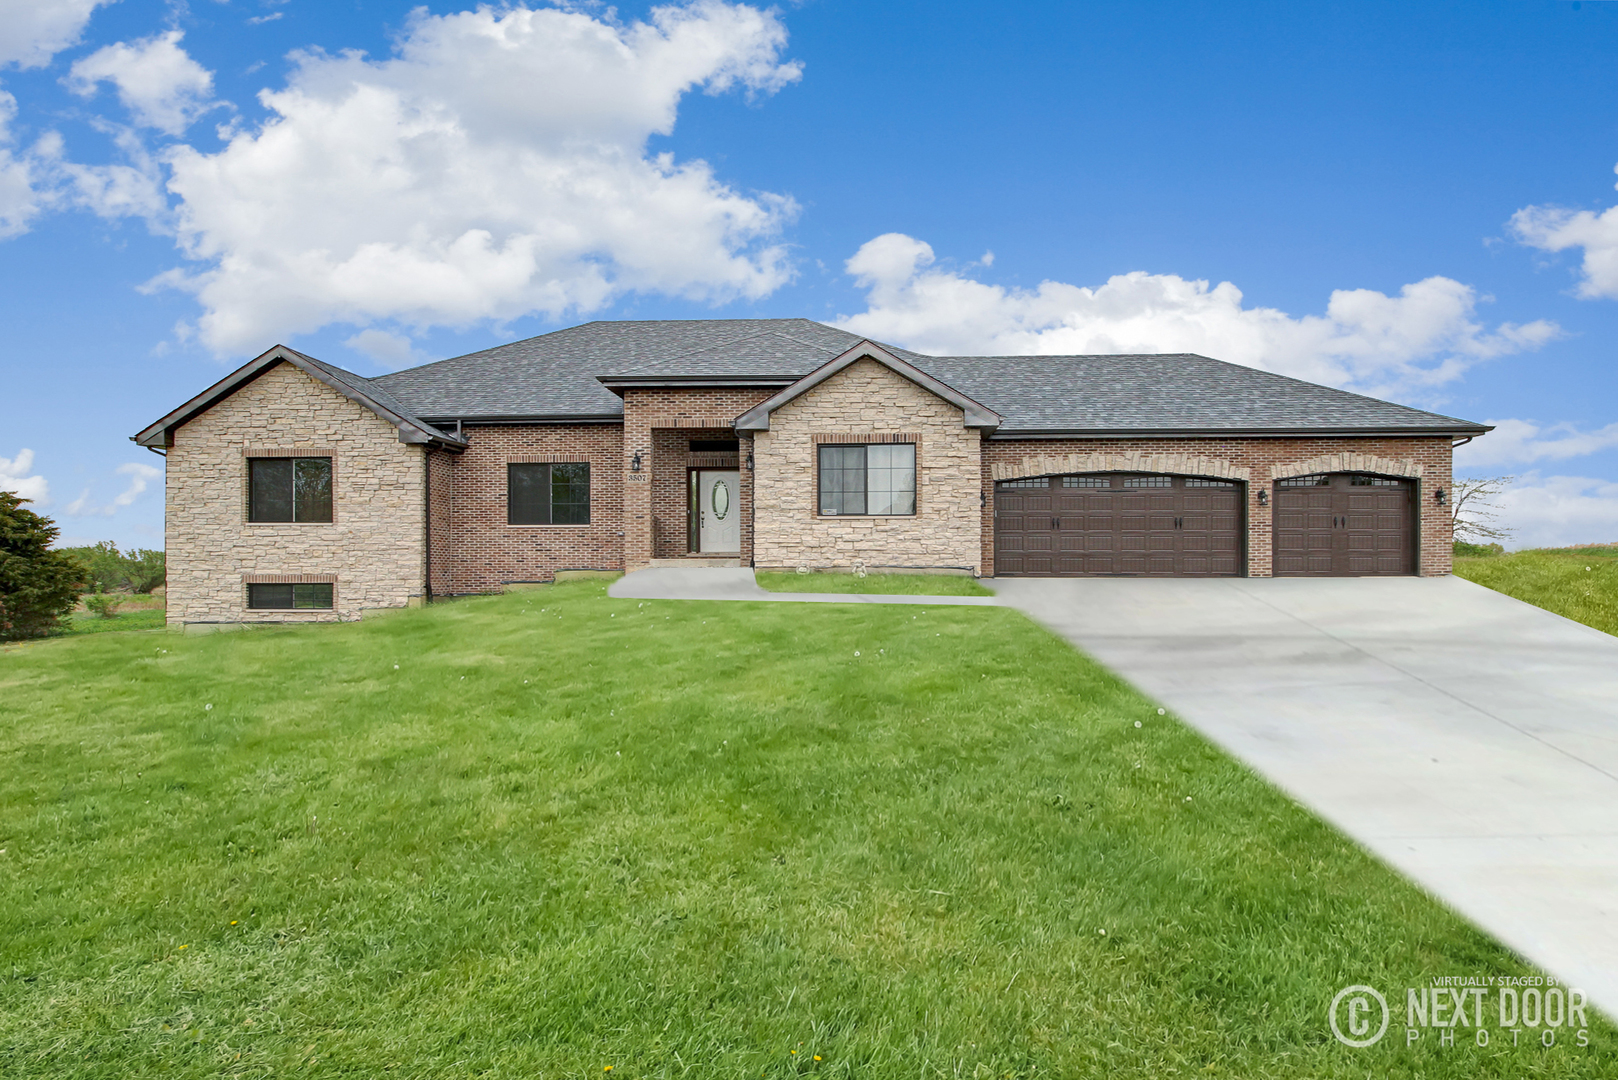 3533 West Pinewood, Monee, Illinois, 60449